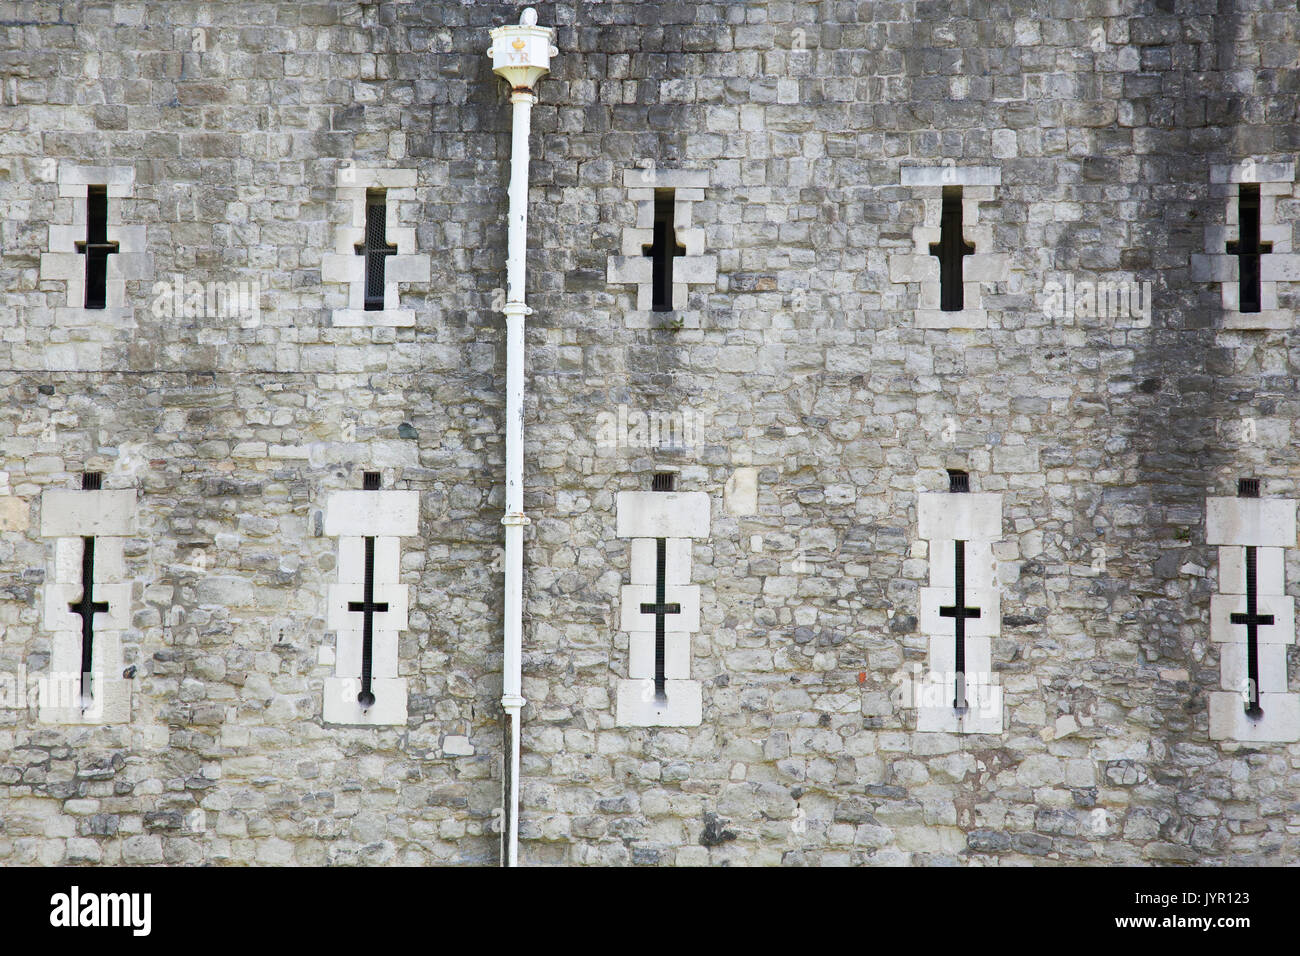 Scenes from The Tower of London, England - Stock Image